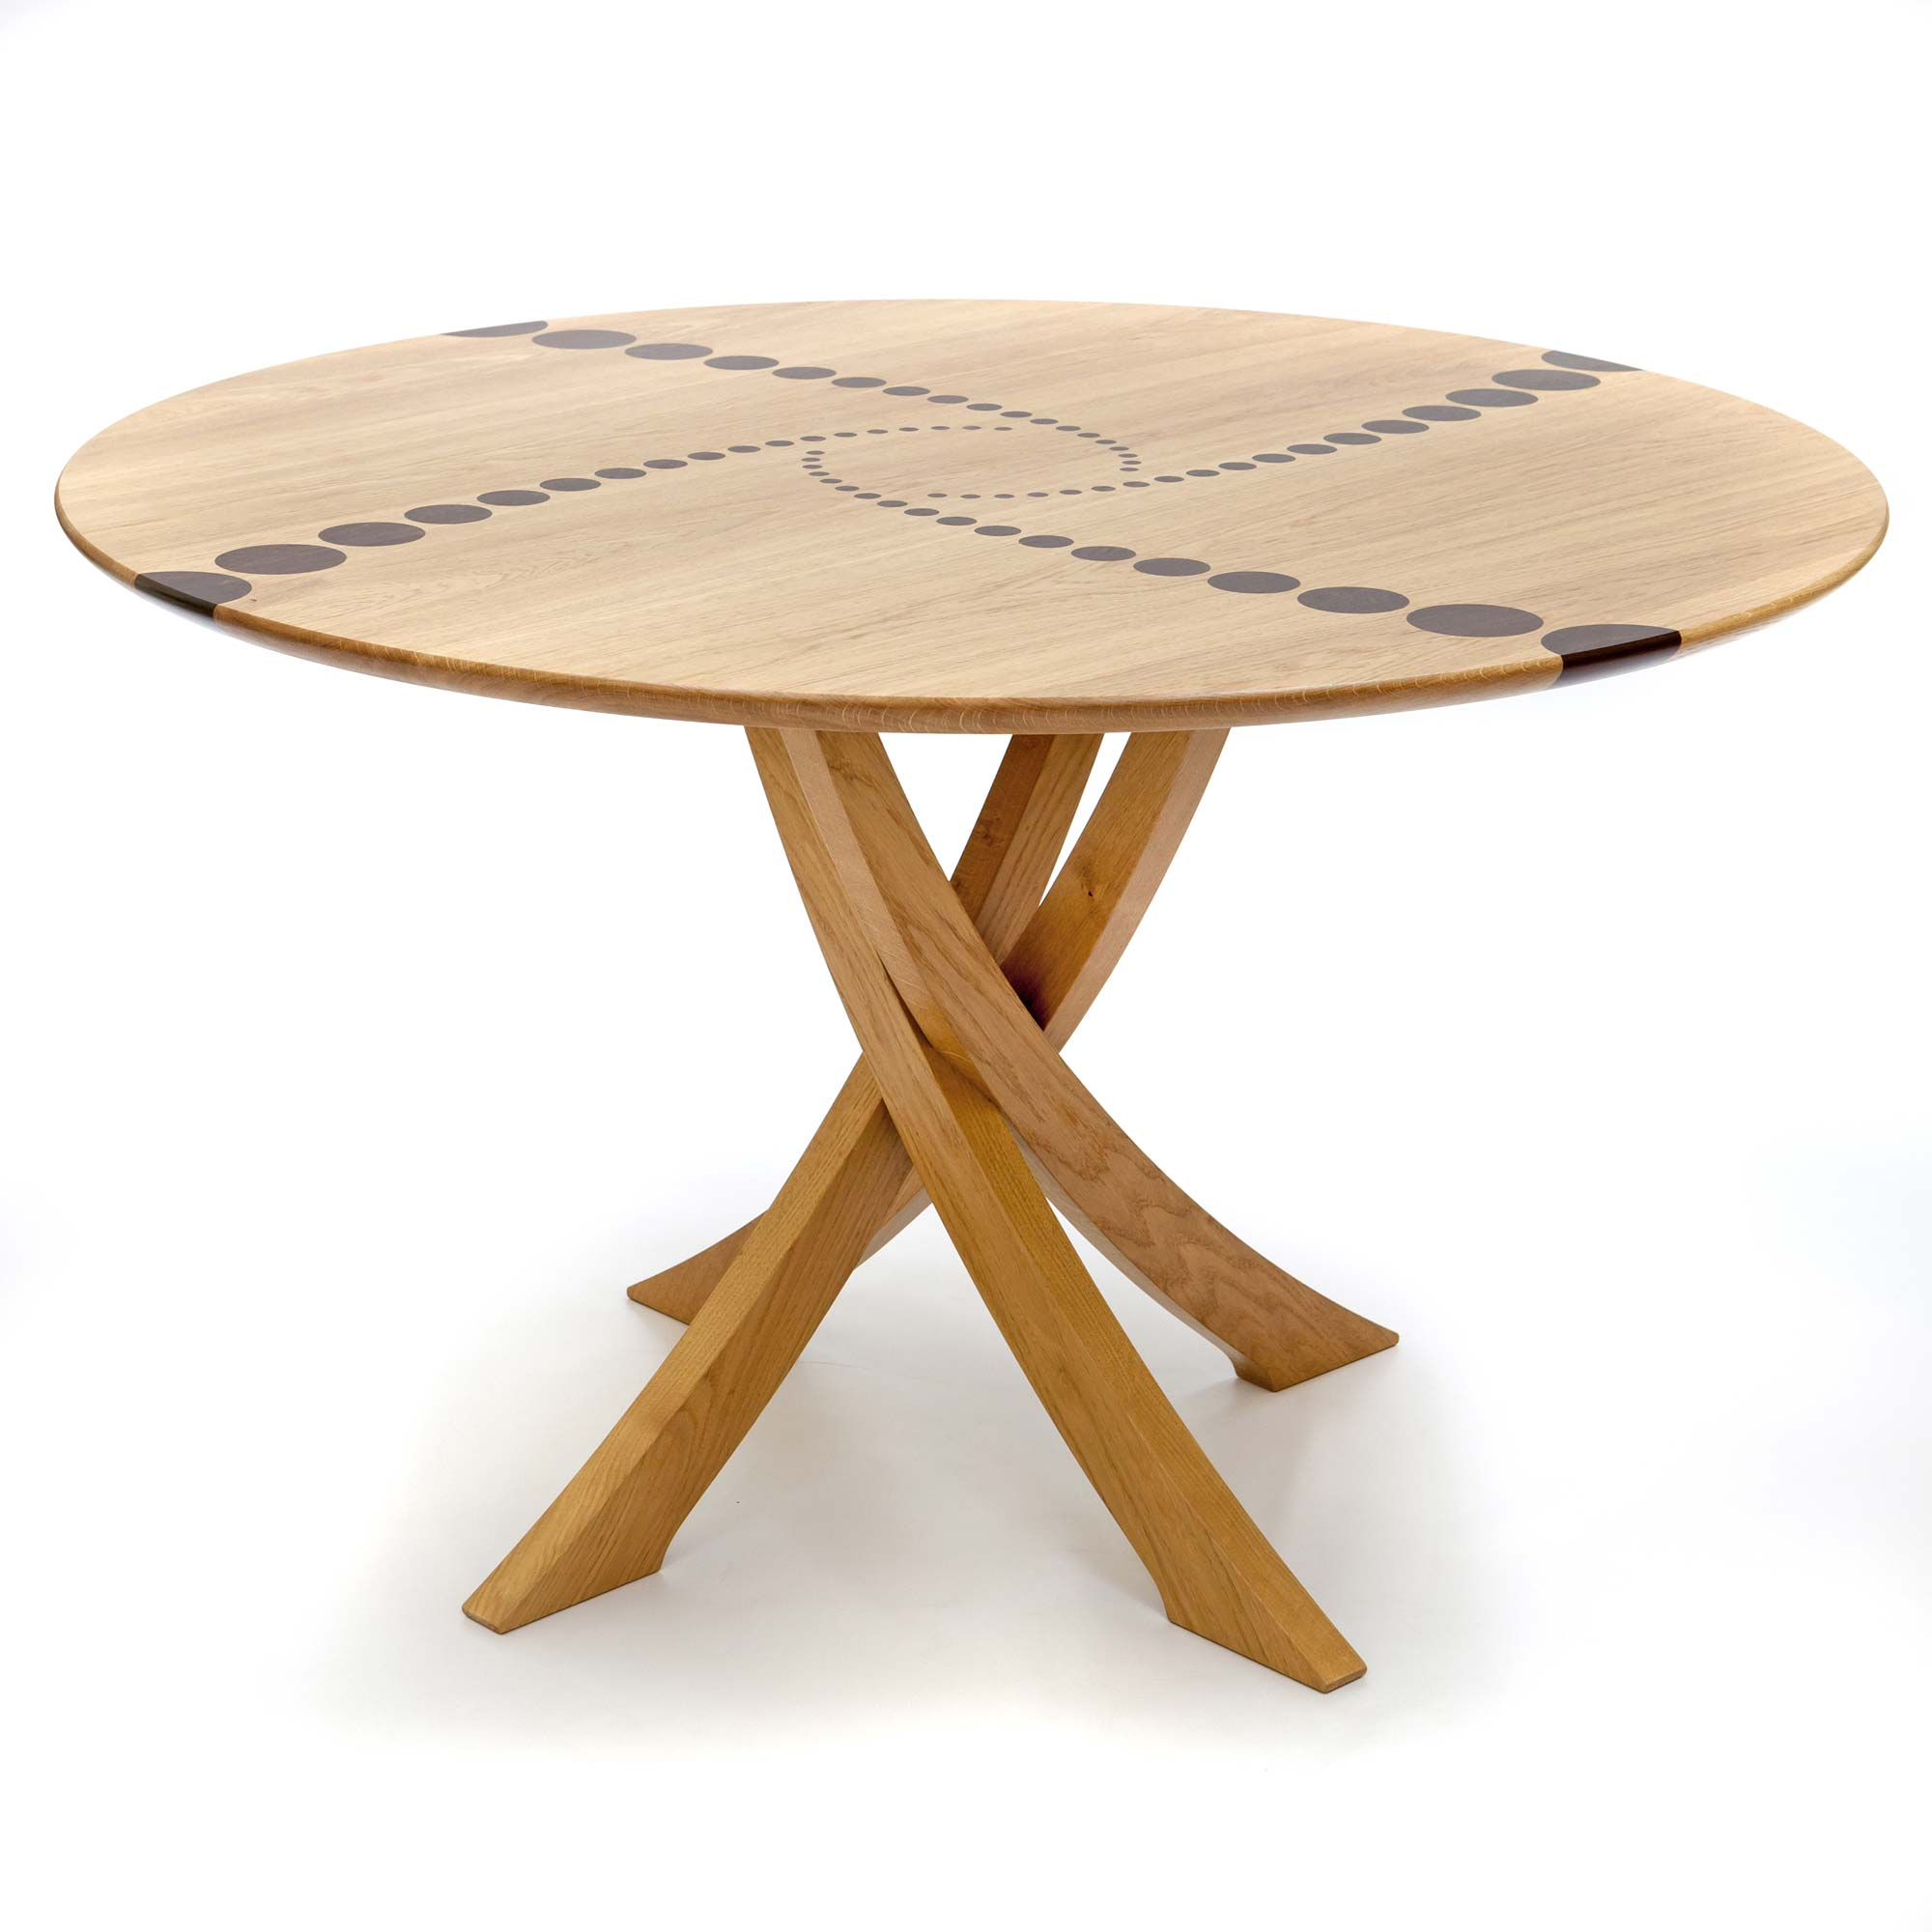 Bespoke Circular Dining Table in oak Makers Eye : round table large01 from makerseye.co.uk size 2000 x 2000 jpeg 136kB